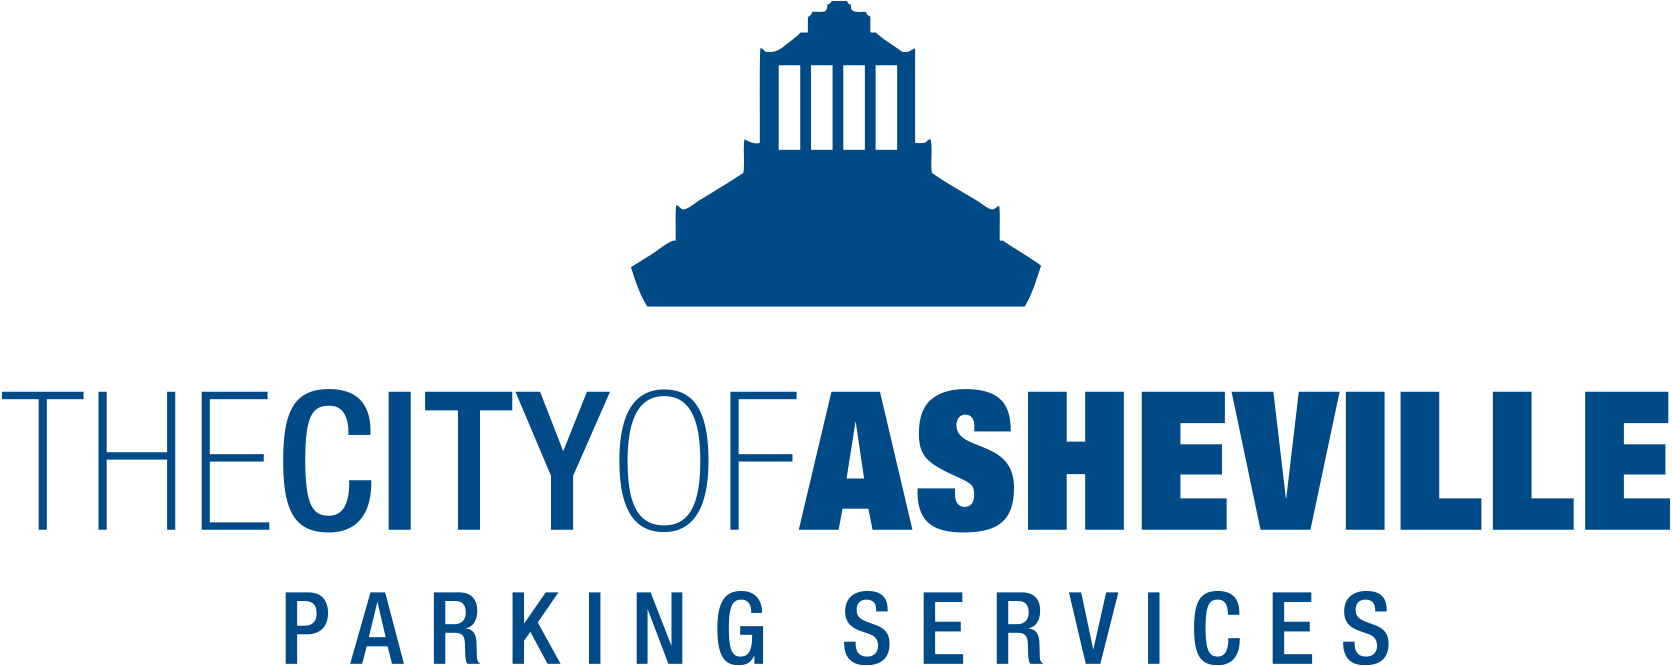 City of Asheville Parking Services